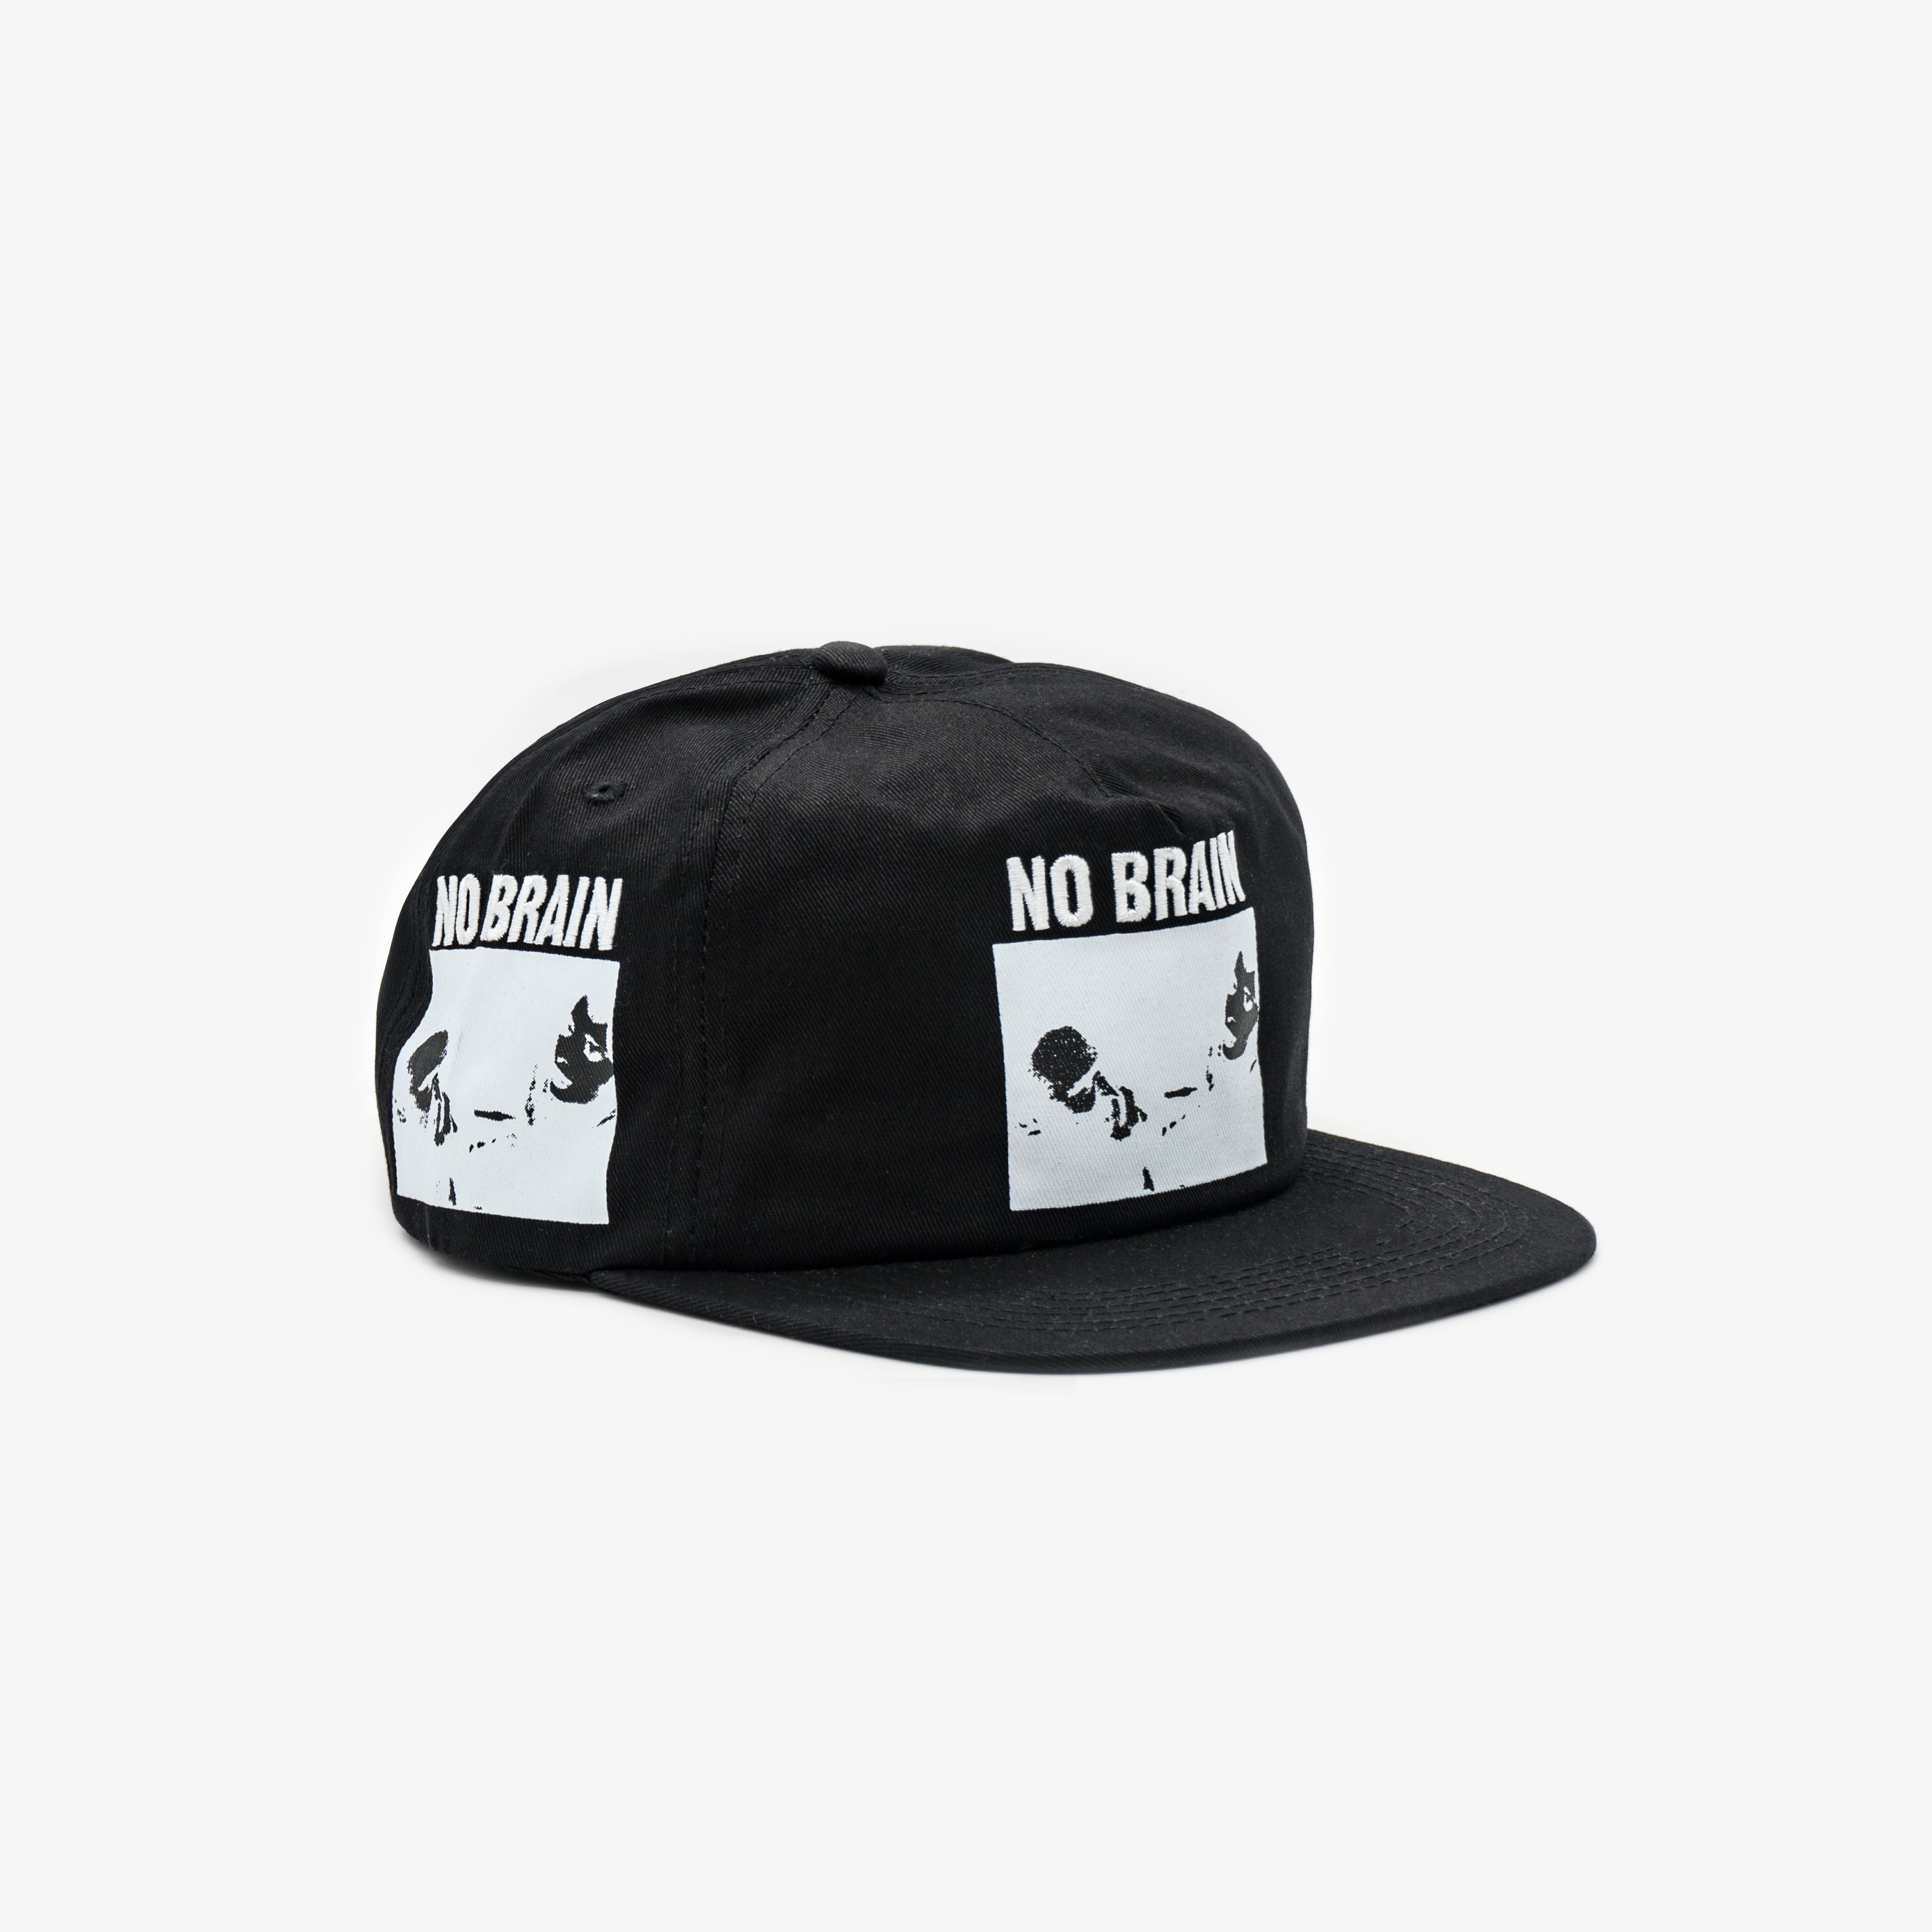 Selectshop FRAME - FUCKING AWESOME No Brain Cap Headwear Dubai